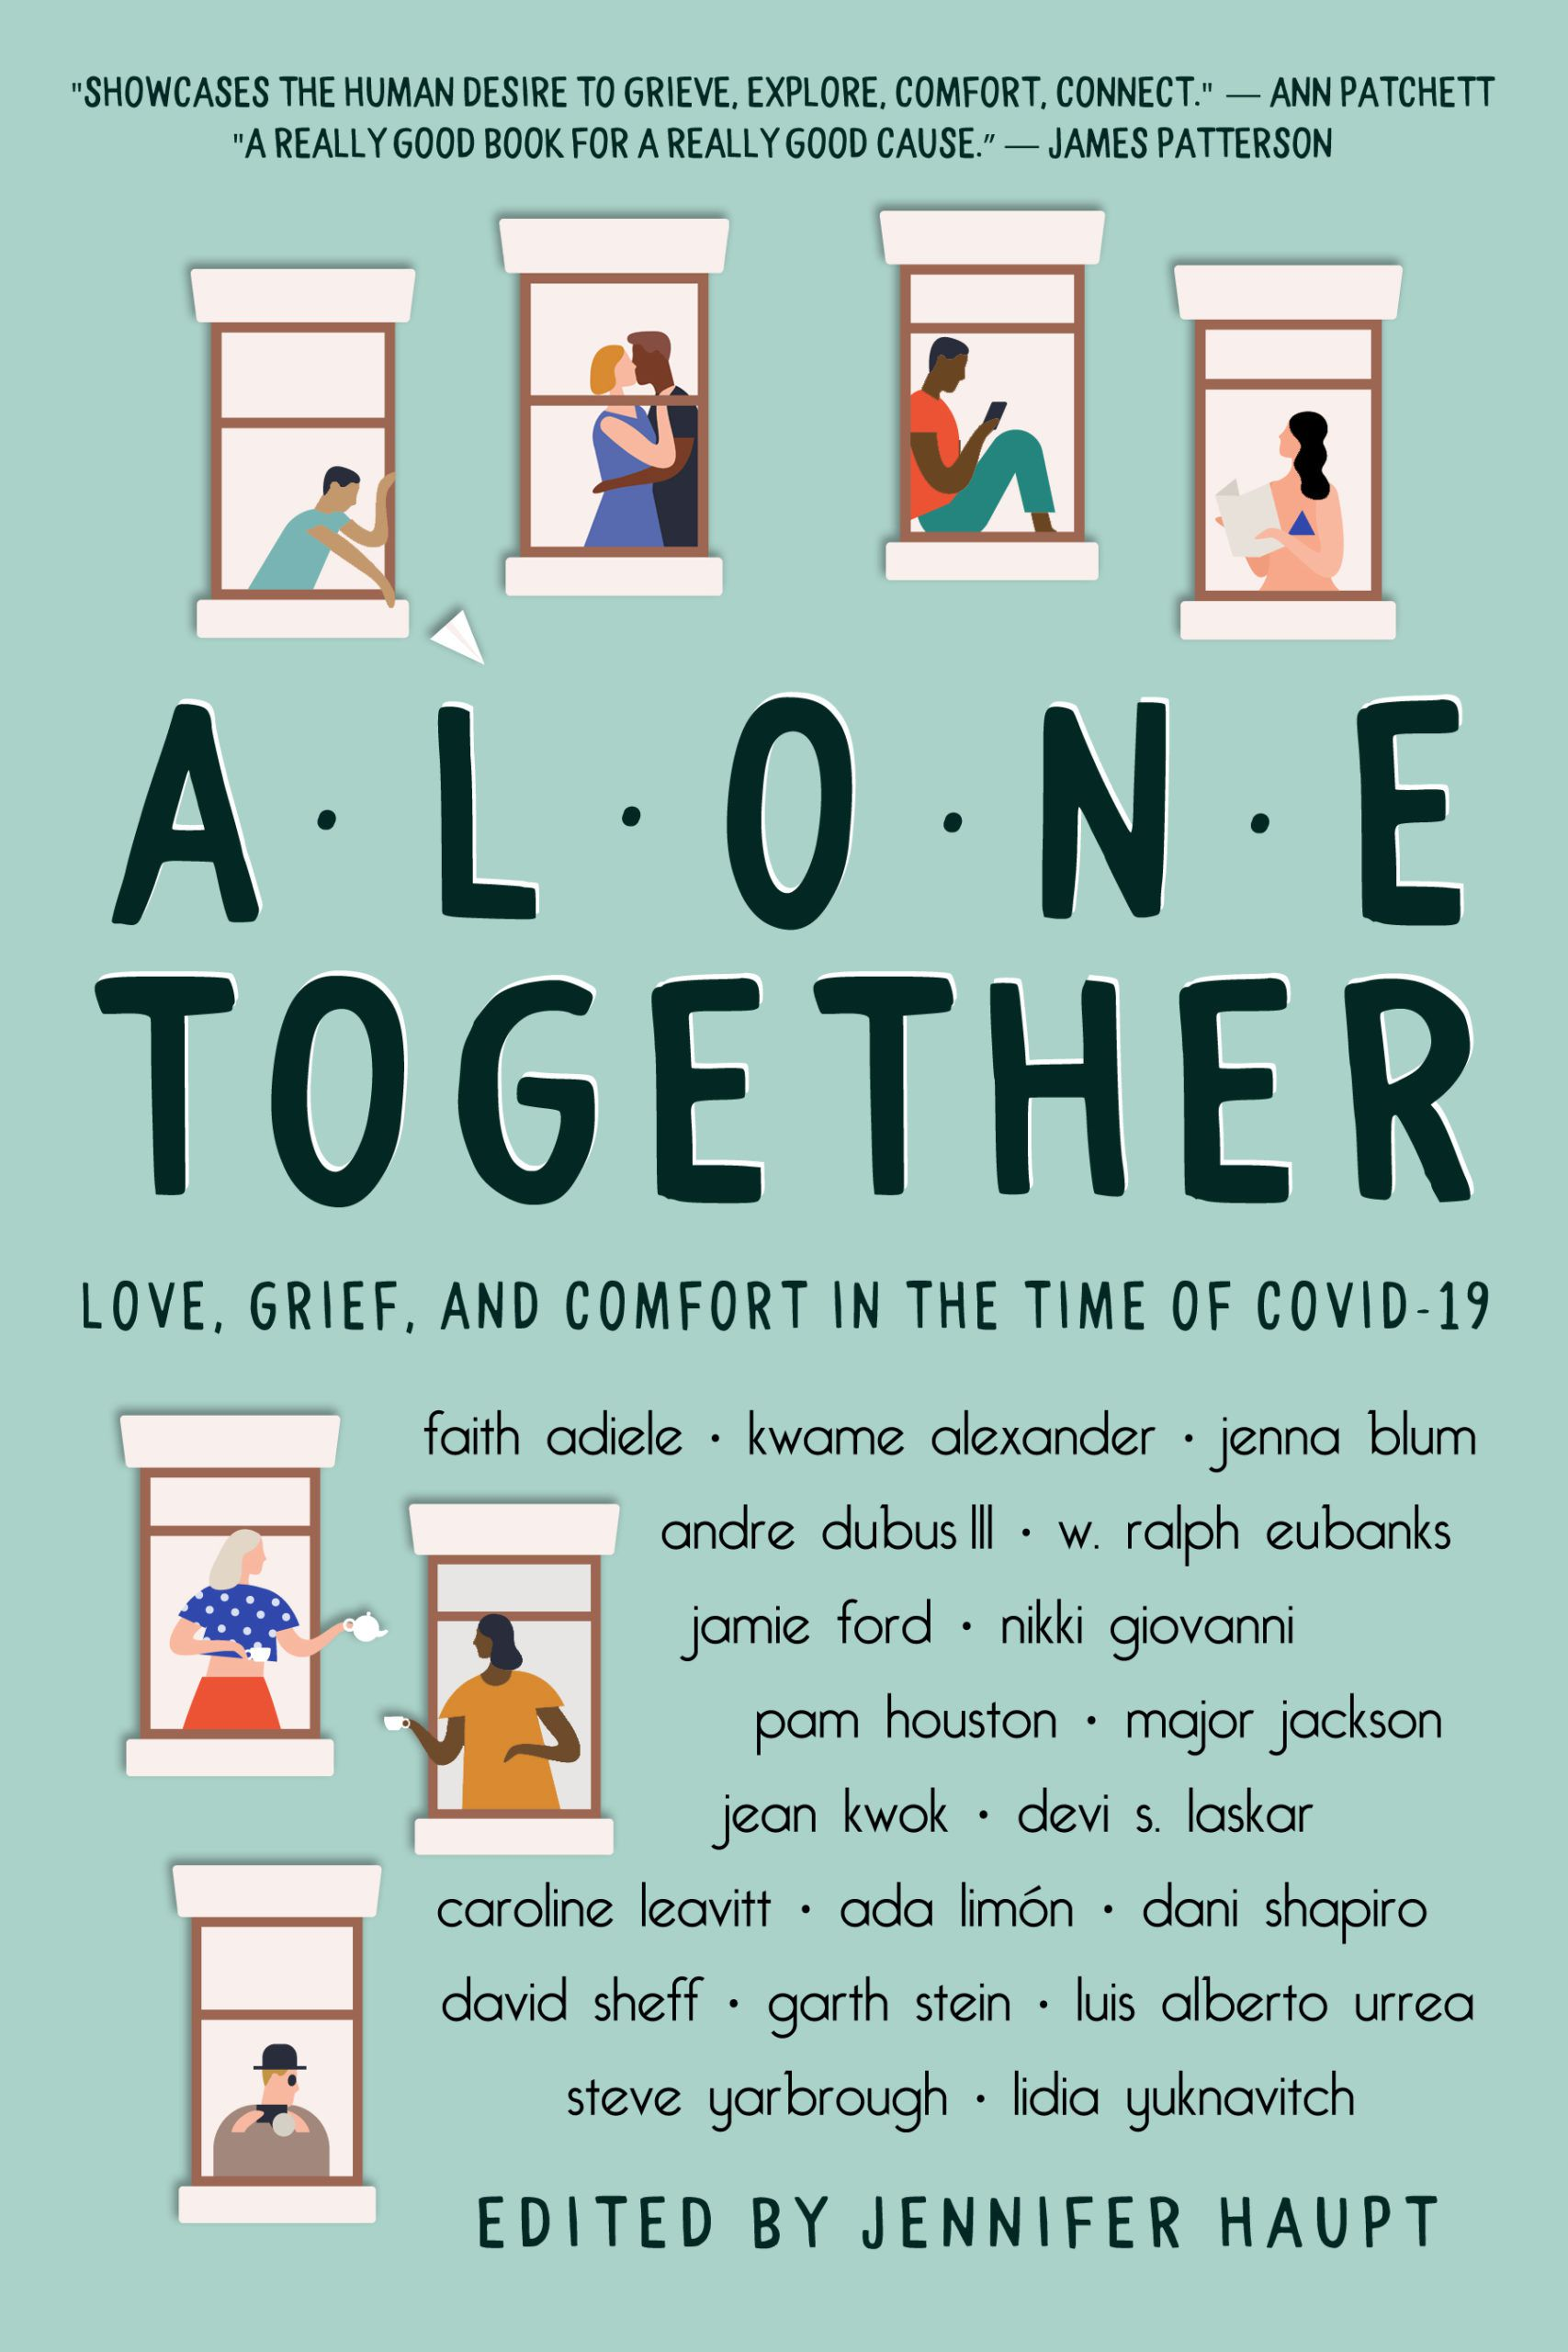 Short Story. Alone Together: Love, Grief and Comfort in the Time of COVID-19, Edited by Jennifer Haupt. Link: https://i.gr-assets.com/images/S/compressed.photo.goodreads.com/books/1592453456l/53342241.jpg